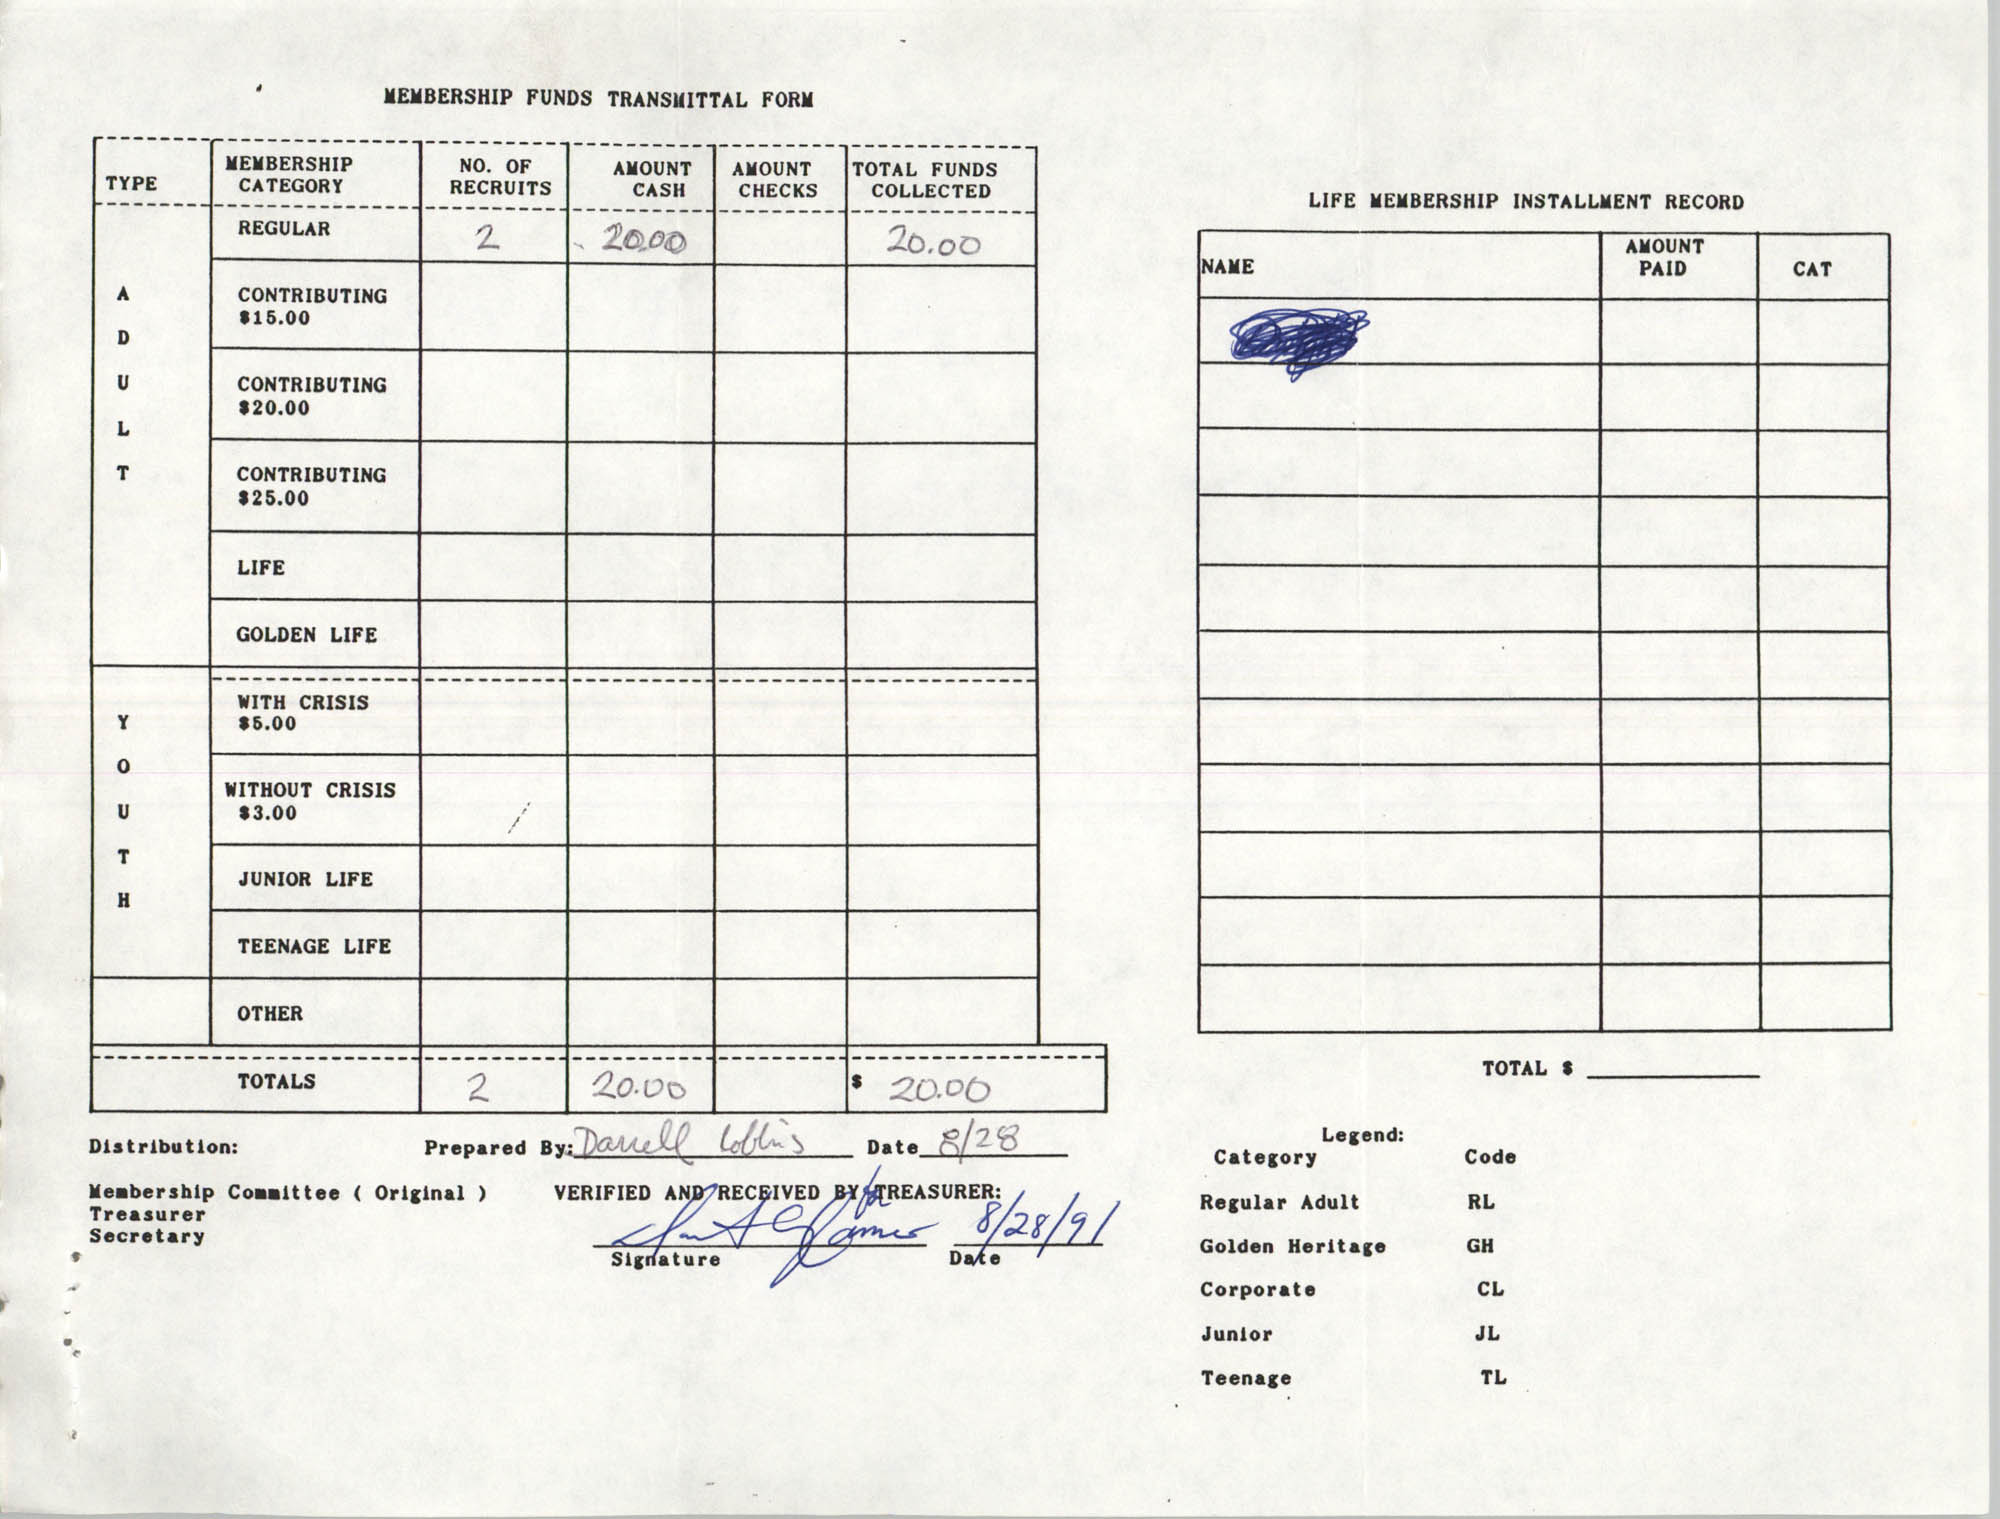 Charleston Branch of the NAACP Funds Transmittal Forms, August 1991, Page 38